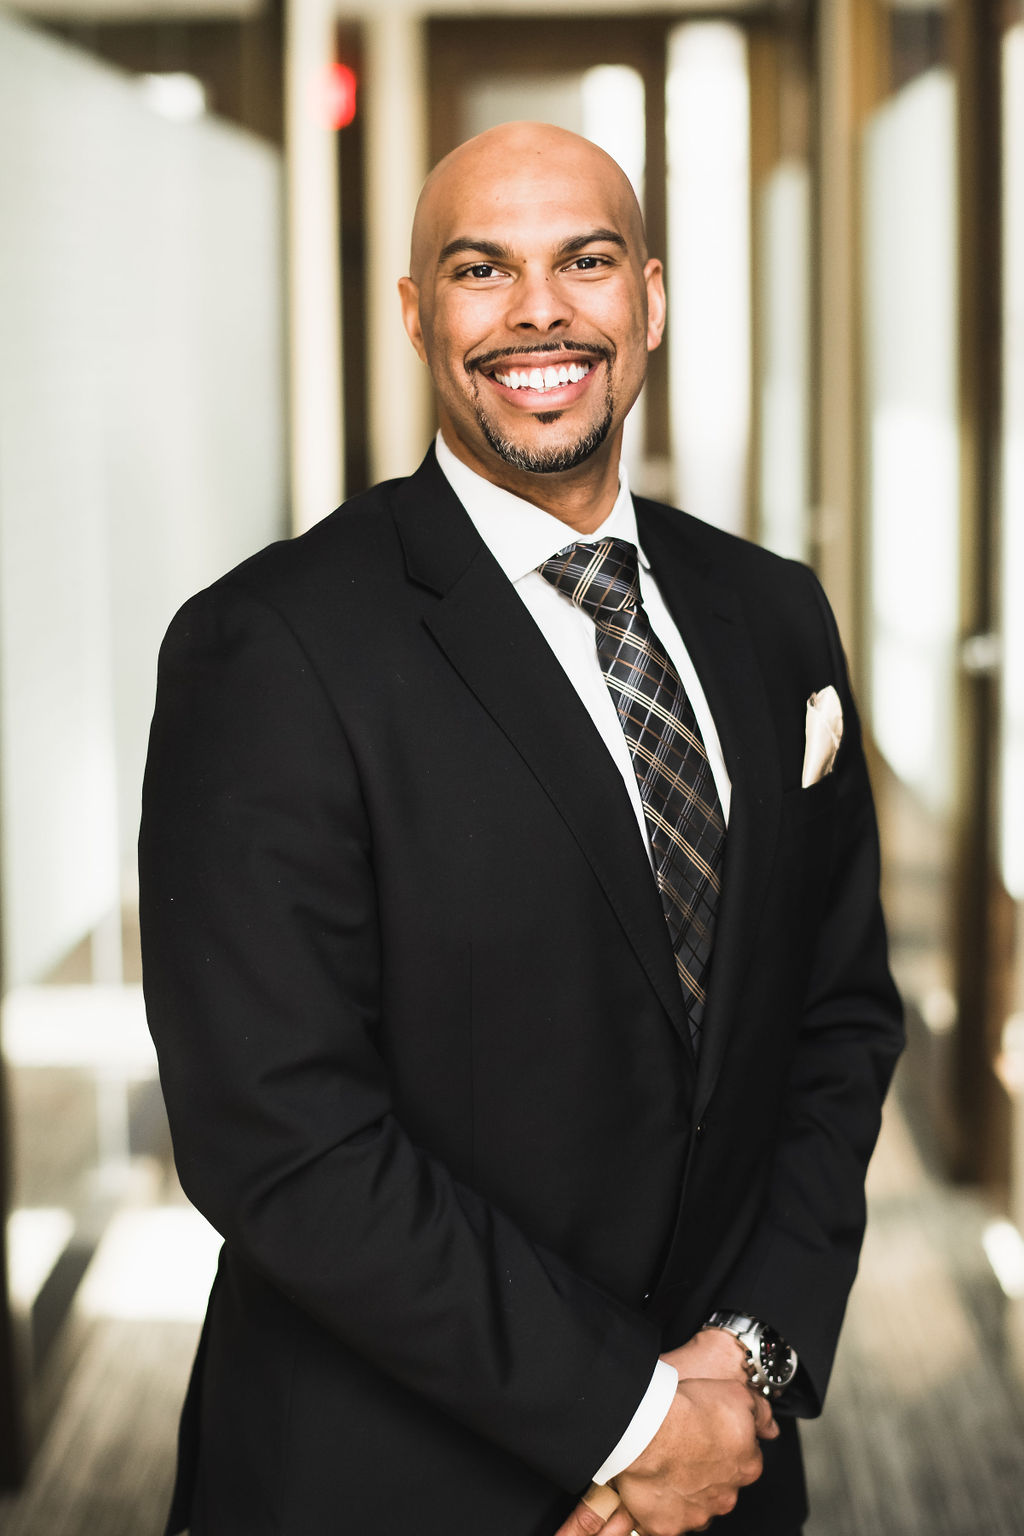 Nick Foulks is the Lead Advisor at the Great Waters Financial Vadnais Heights office